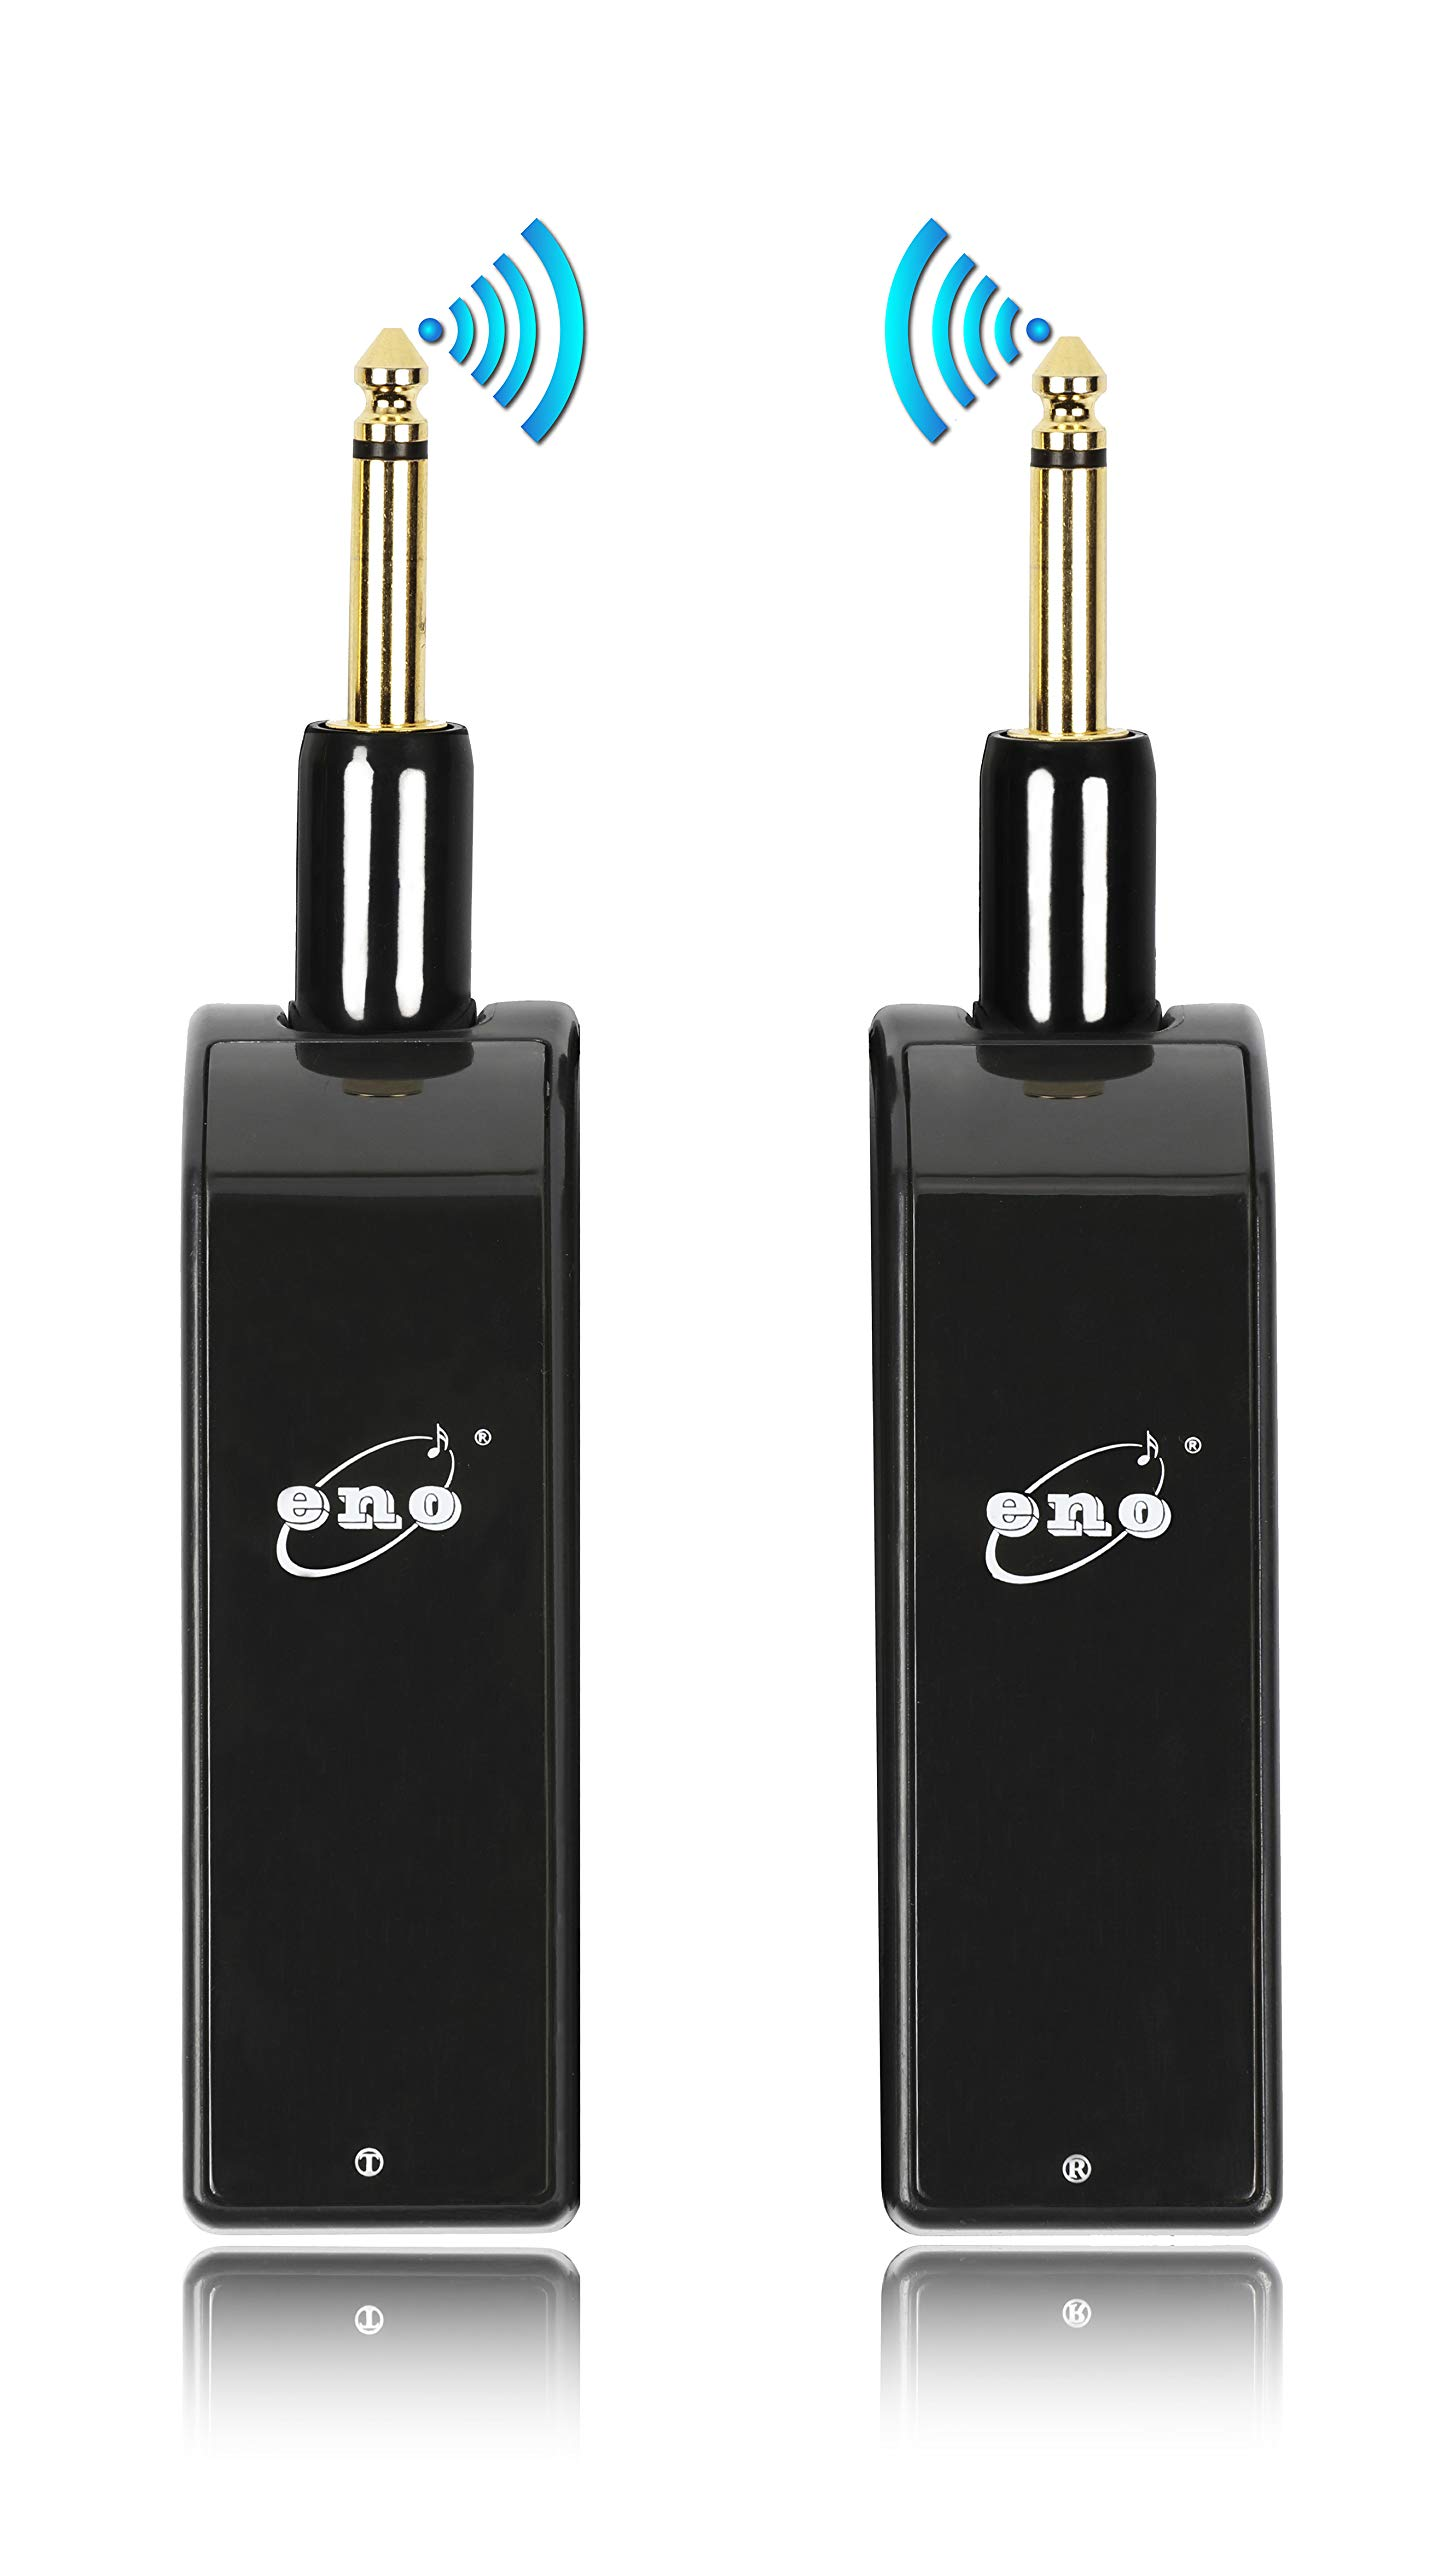 Eno Rechargeable 2.4GHz Wireless Guitar System - Digital Sound Wireless Transmitter and Receiver for Guitar - Super Strong Signal over 160 Feet - Shortest Latency in 1.5ms with Touch Screen Button by Eno